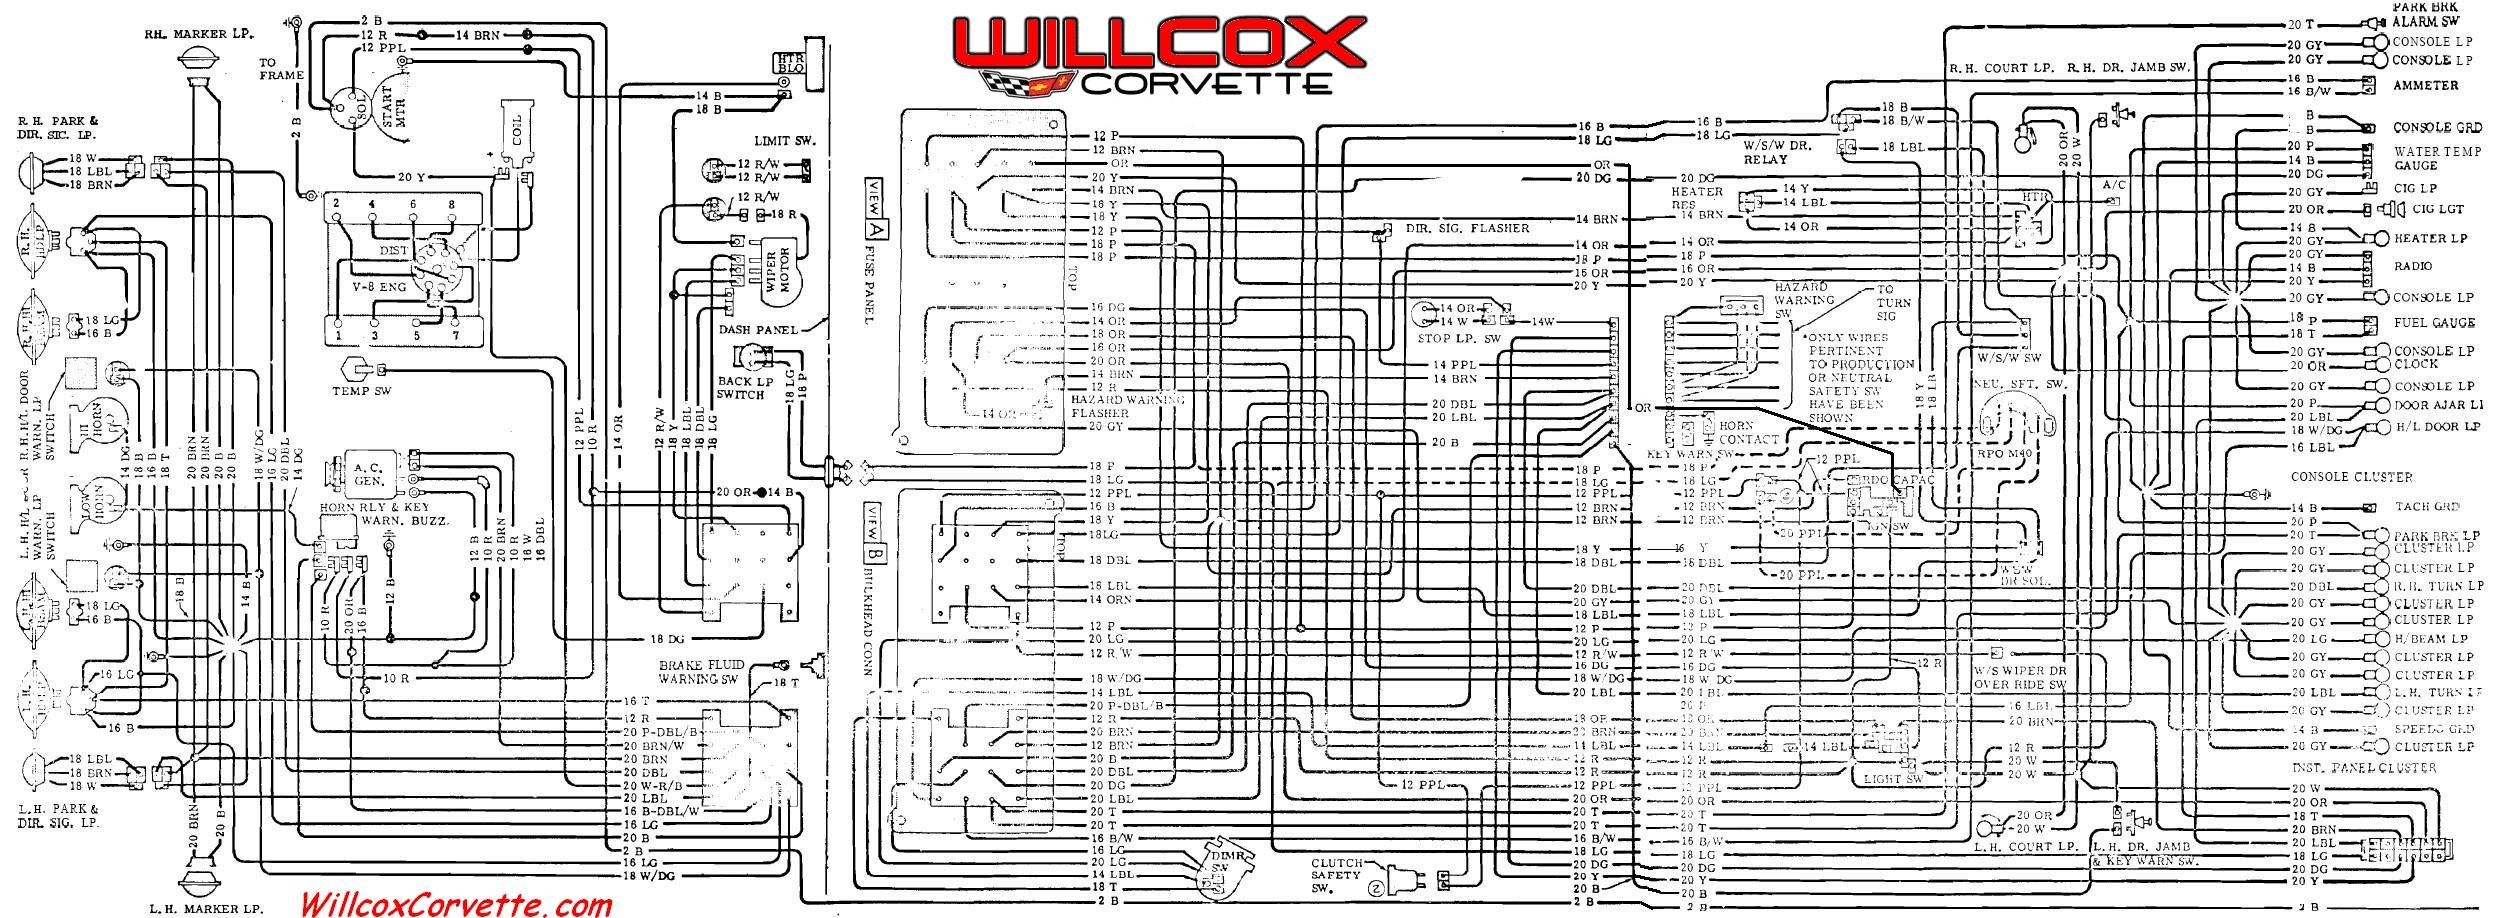 free template c3 corvette wiring diagram c3 corvette wiring diagram corvette wiring diagram for 2005 cam sensor free template c3 corvette wiring diagram c3 corvette